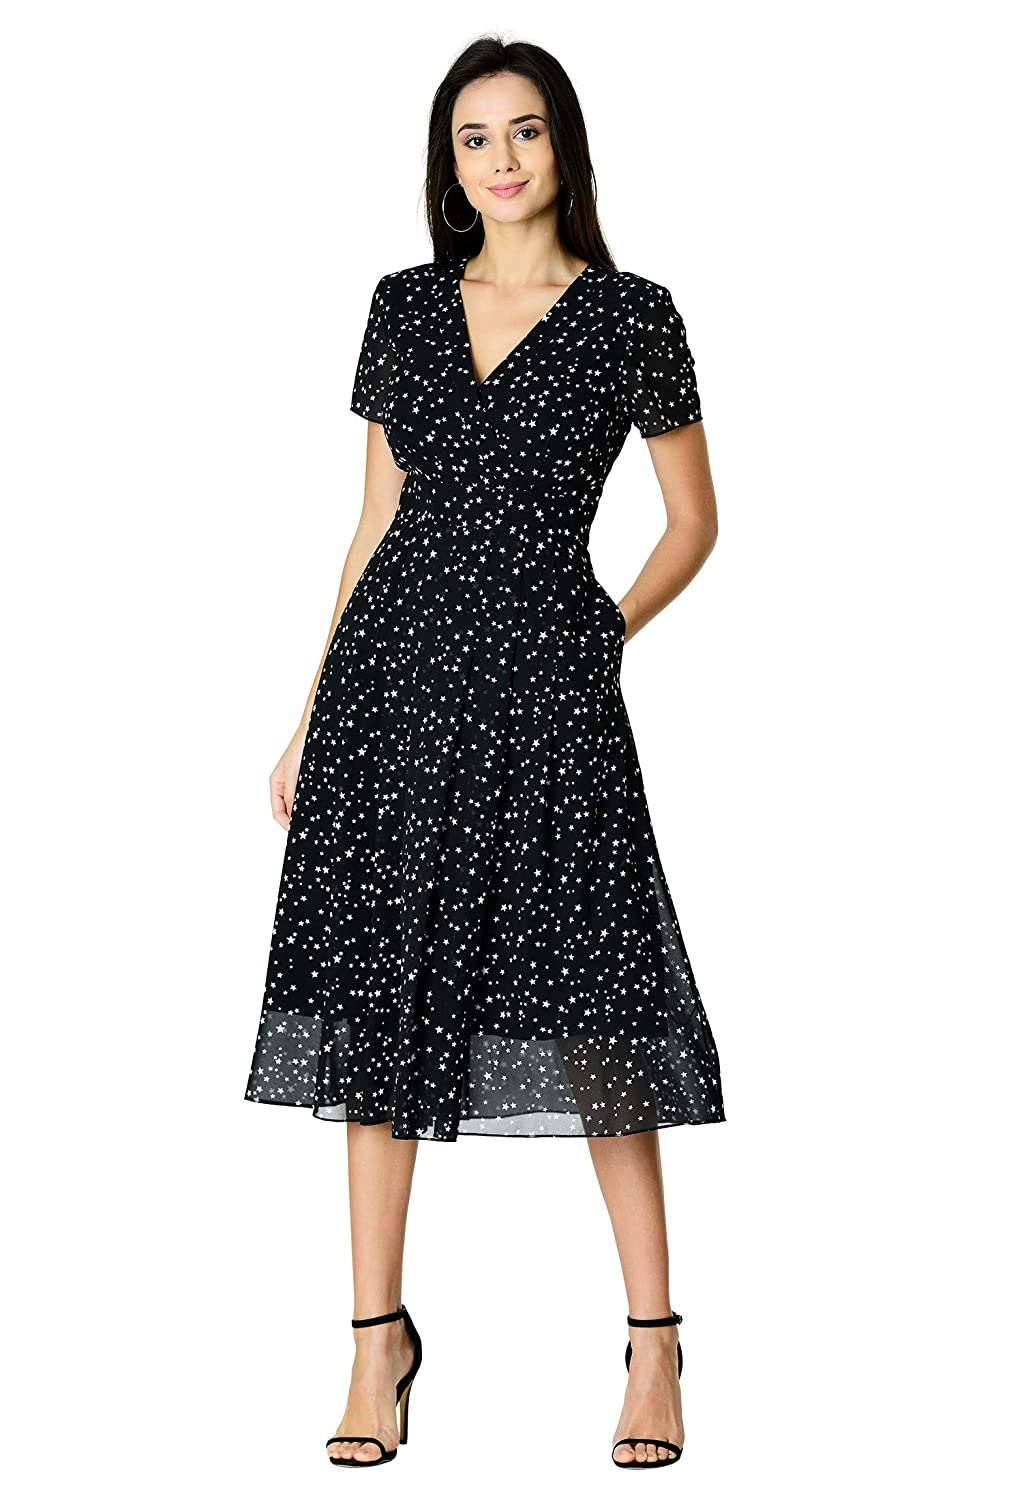 1940s Dresses | 40s Dress, Swing Dress eShakti FX Surplice Star Print Georgette Dress $69.95 AT vintagedancer.com